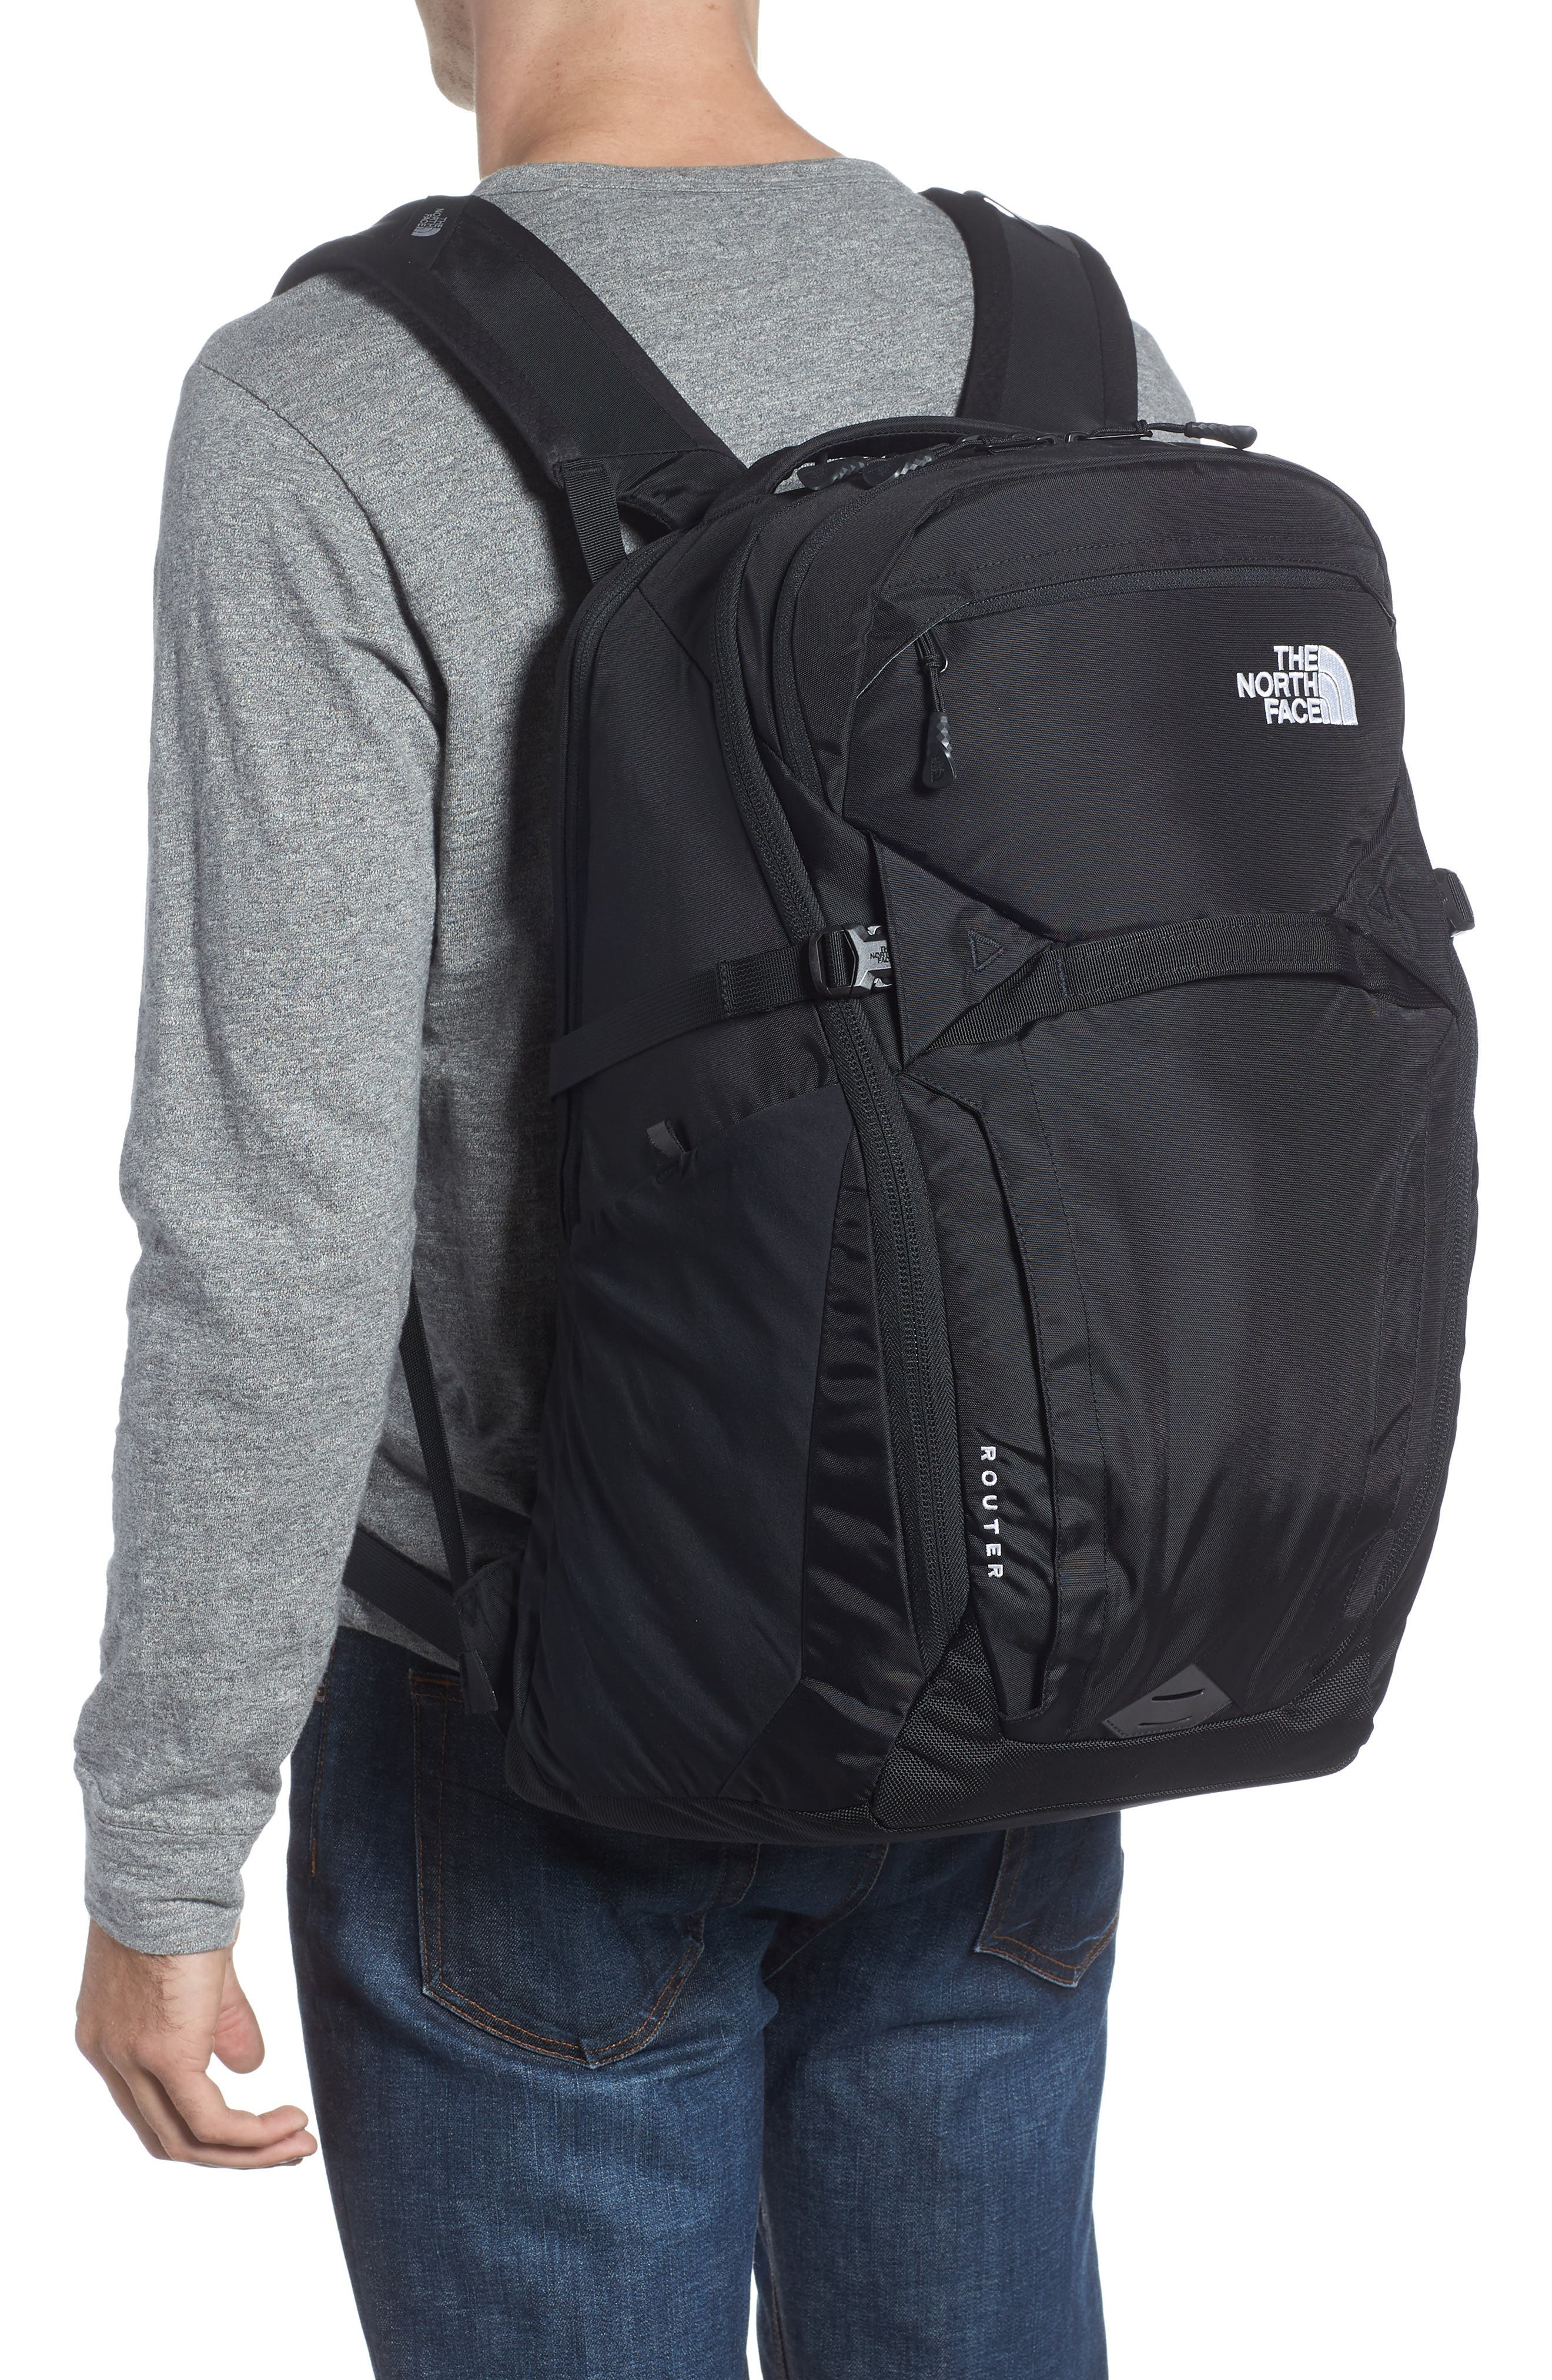 Router Backpack,                             Alternate thumbnail 2, color,                             001